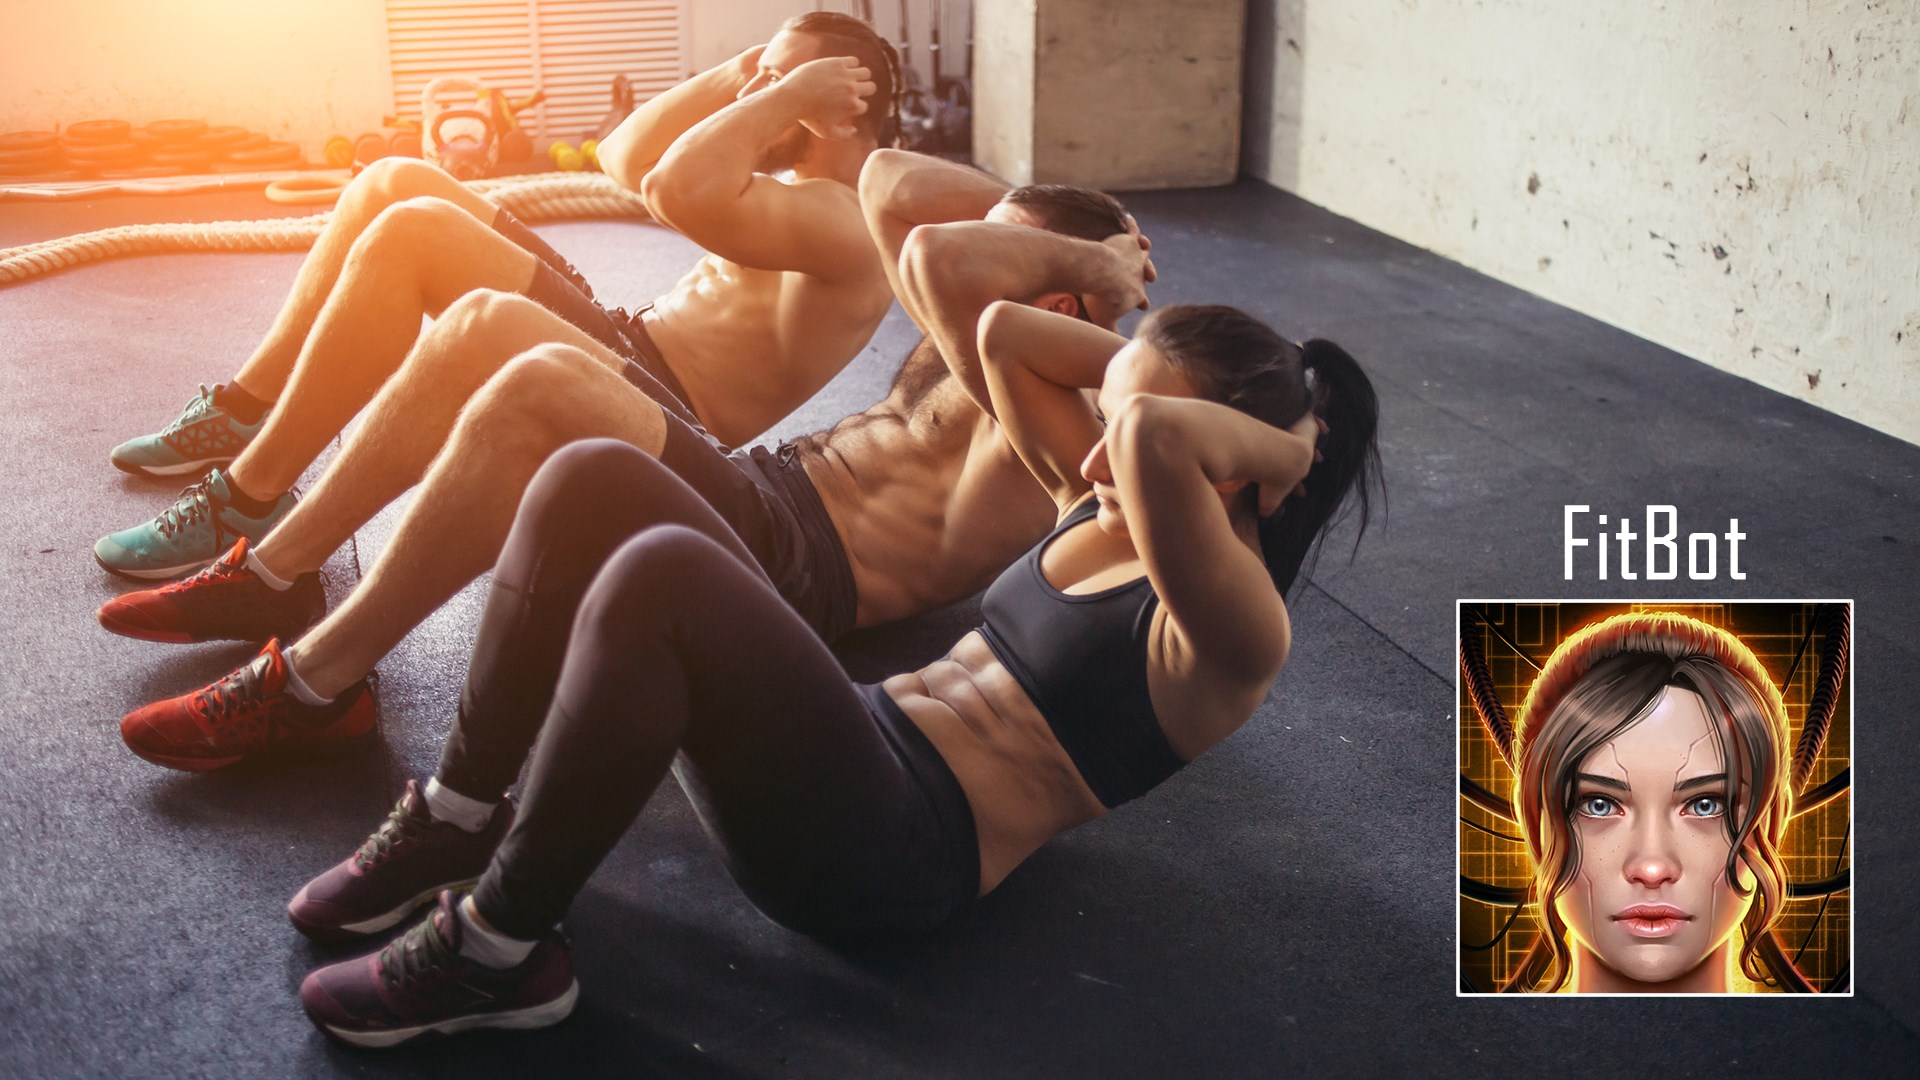 Get FitBot - Weight Loss Workout - Microsoft Store